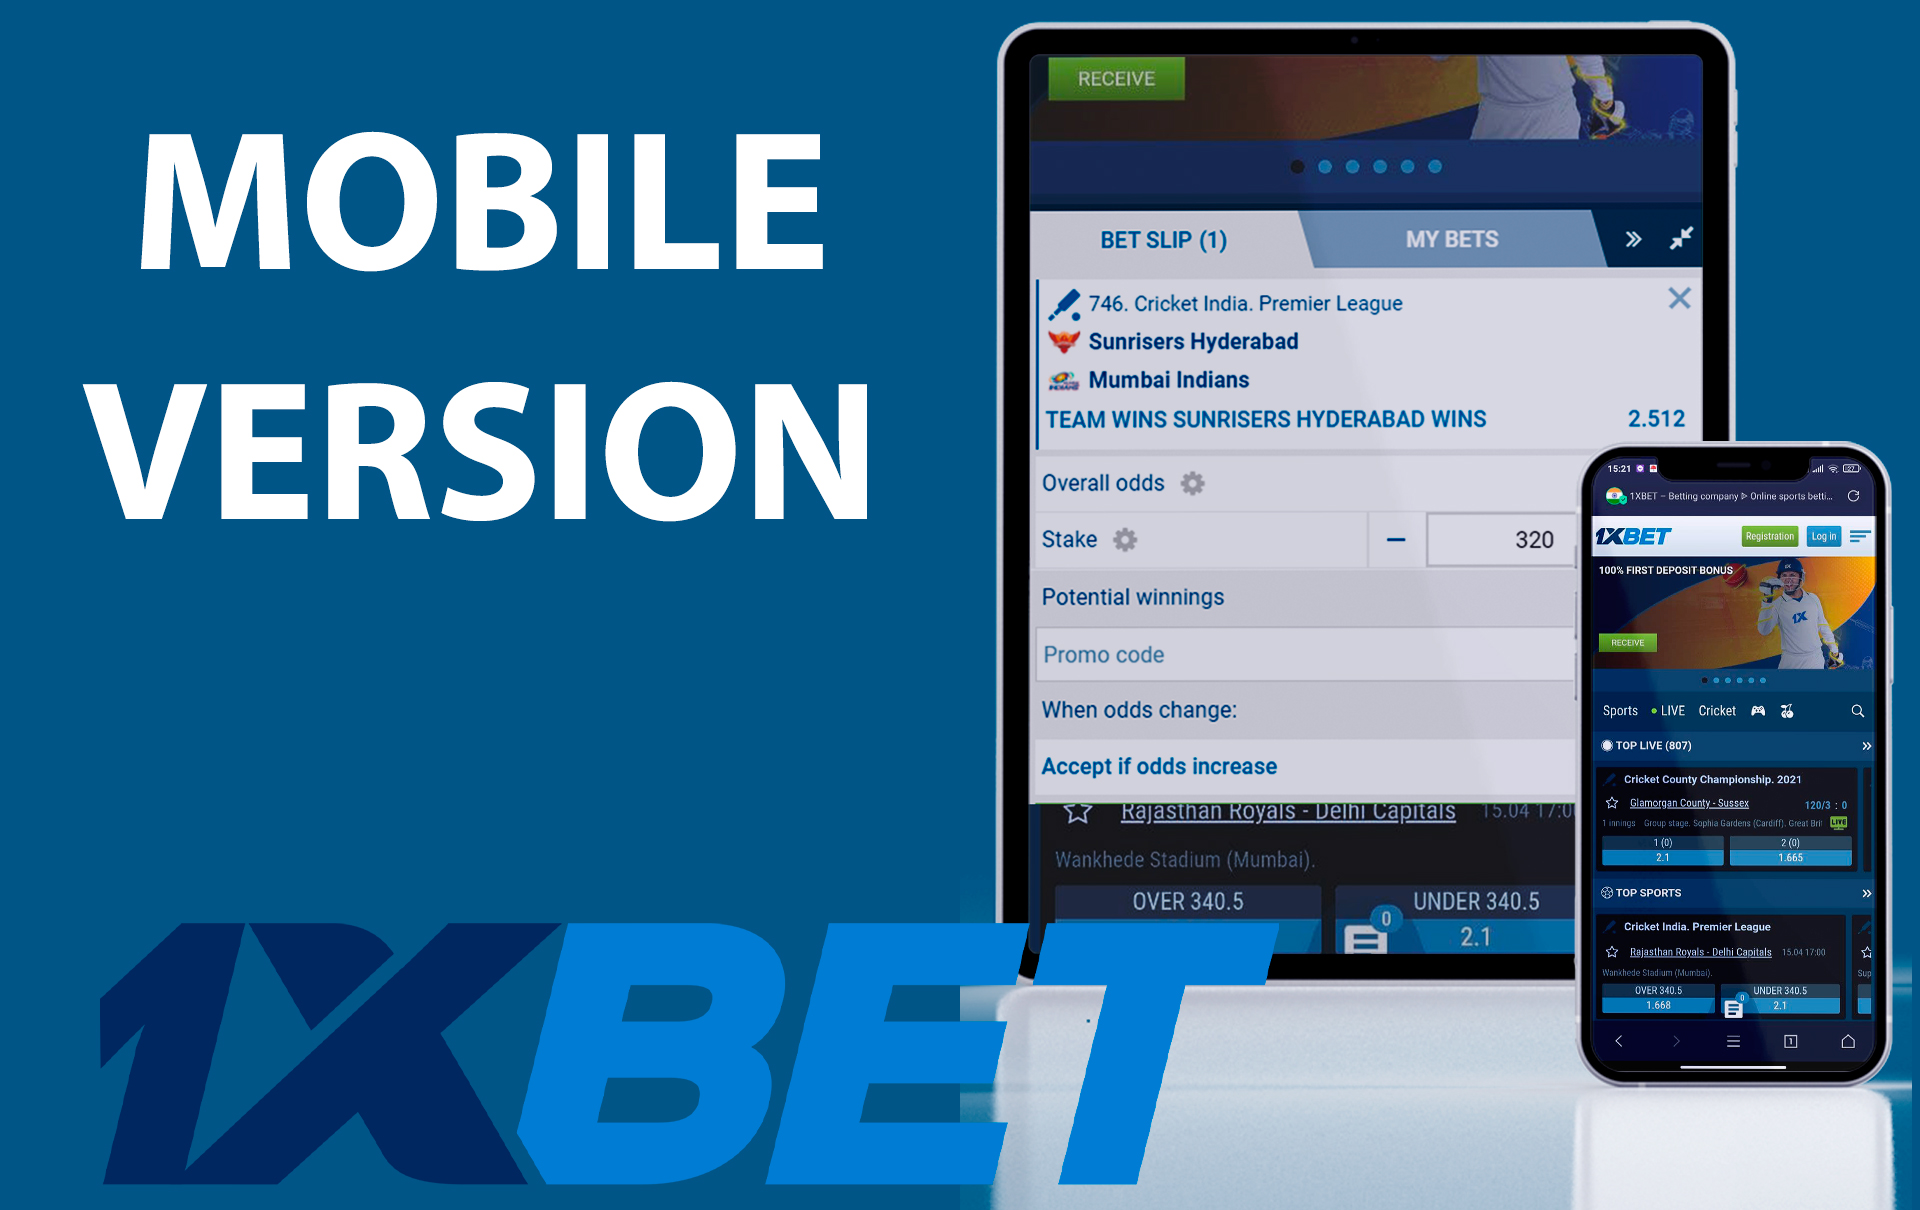 1xbet mobile version for betting on sports without downloading the app.